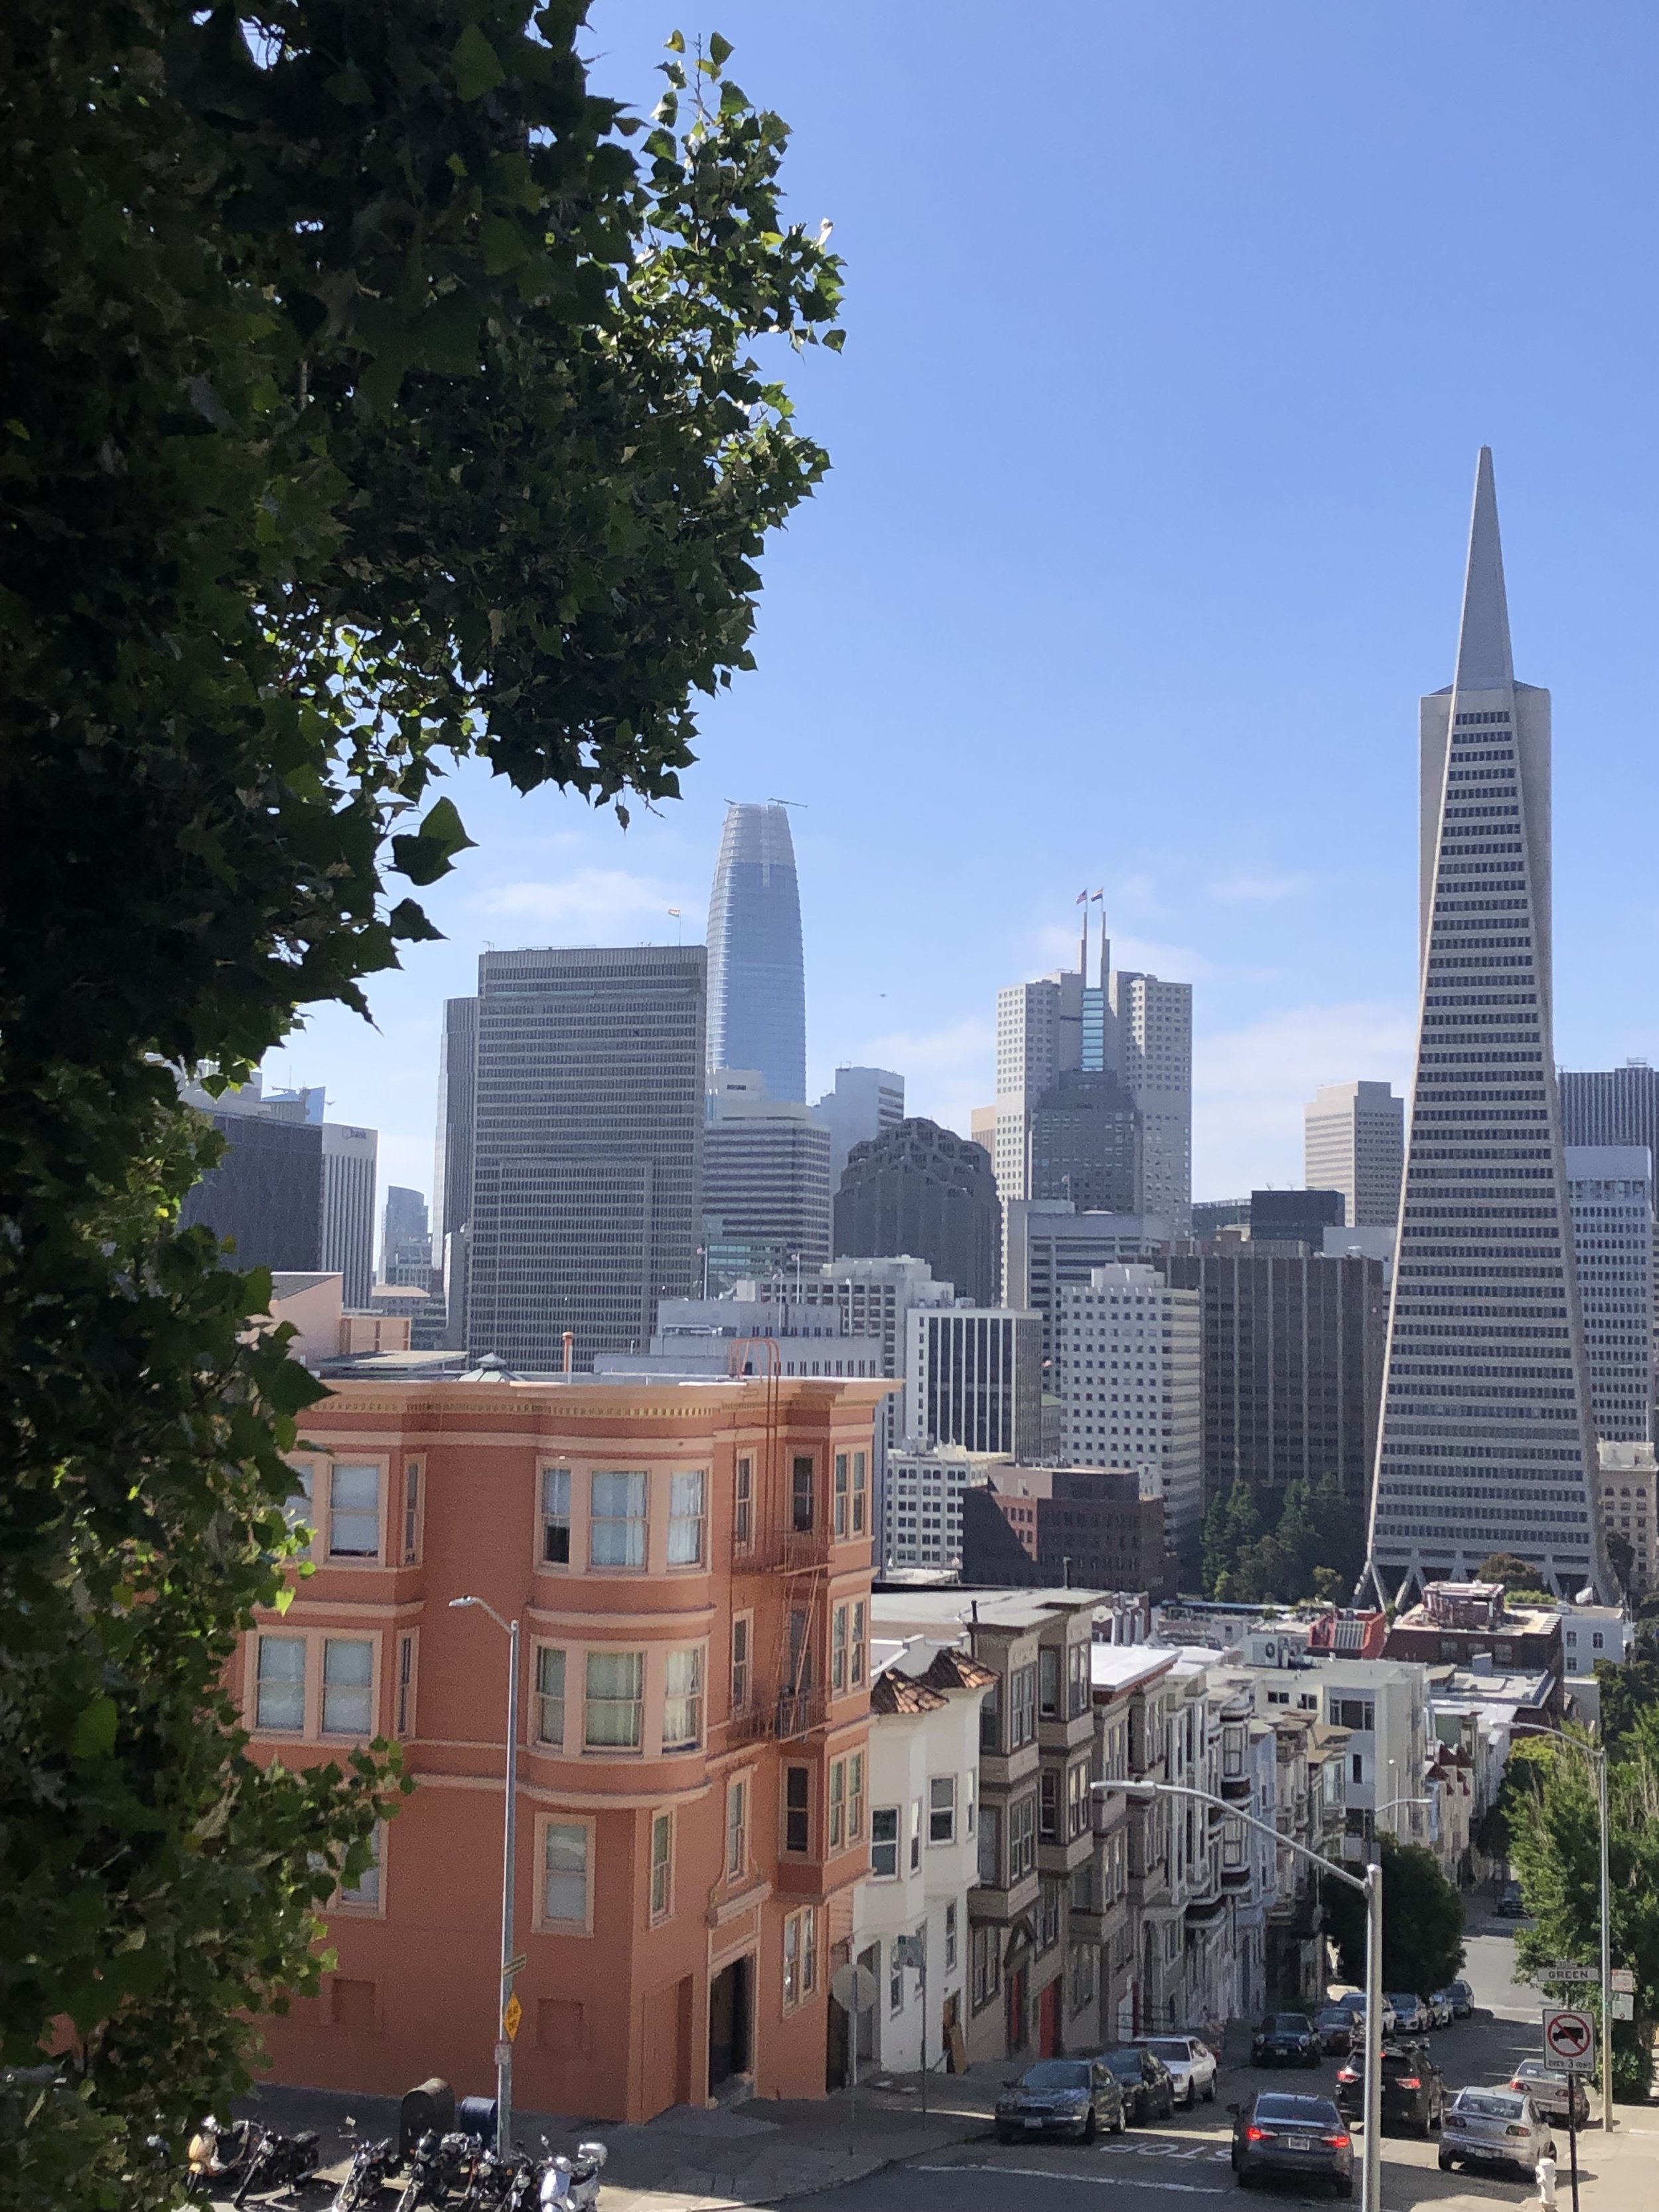 Downtown San Francisco from Telegraph Hill.